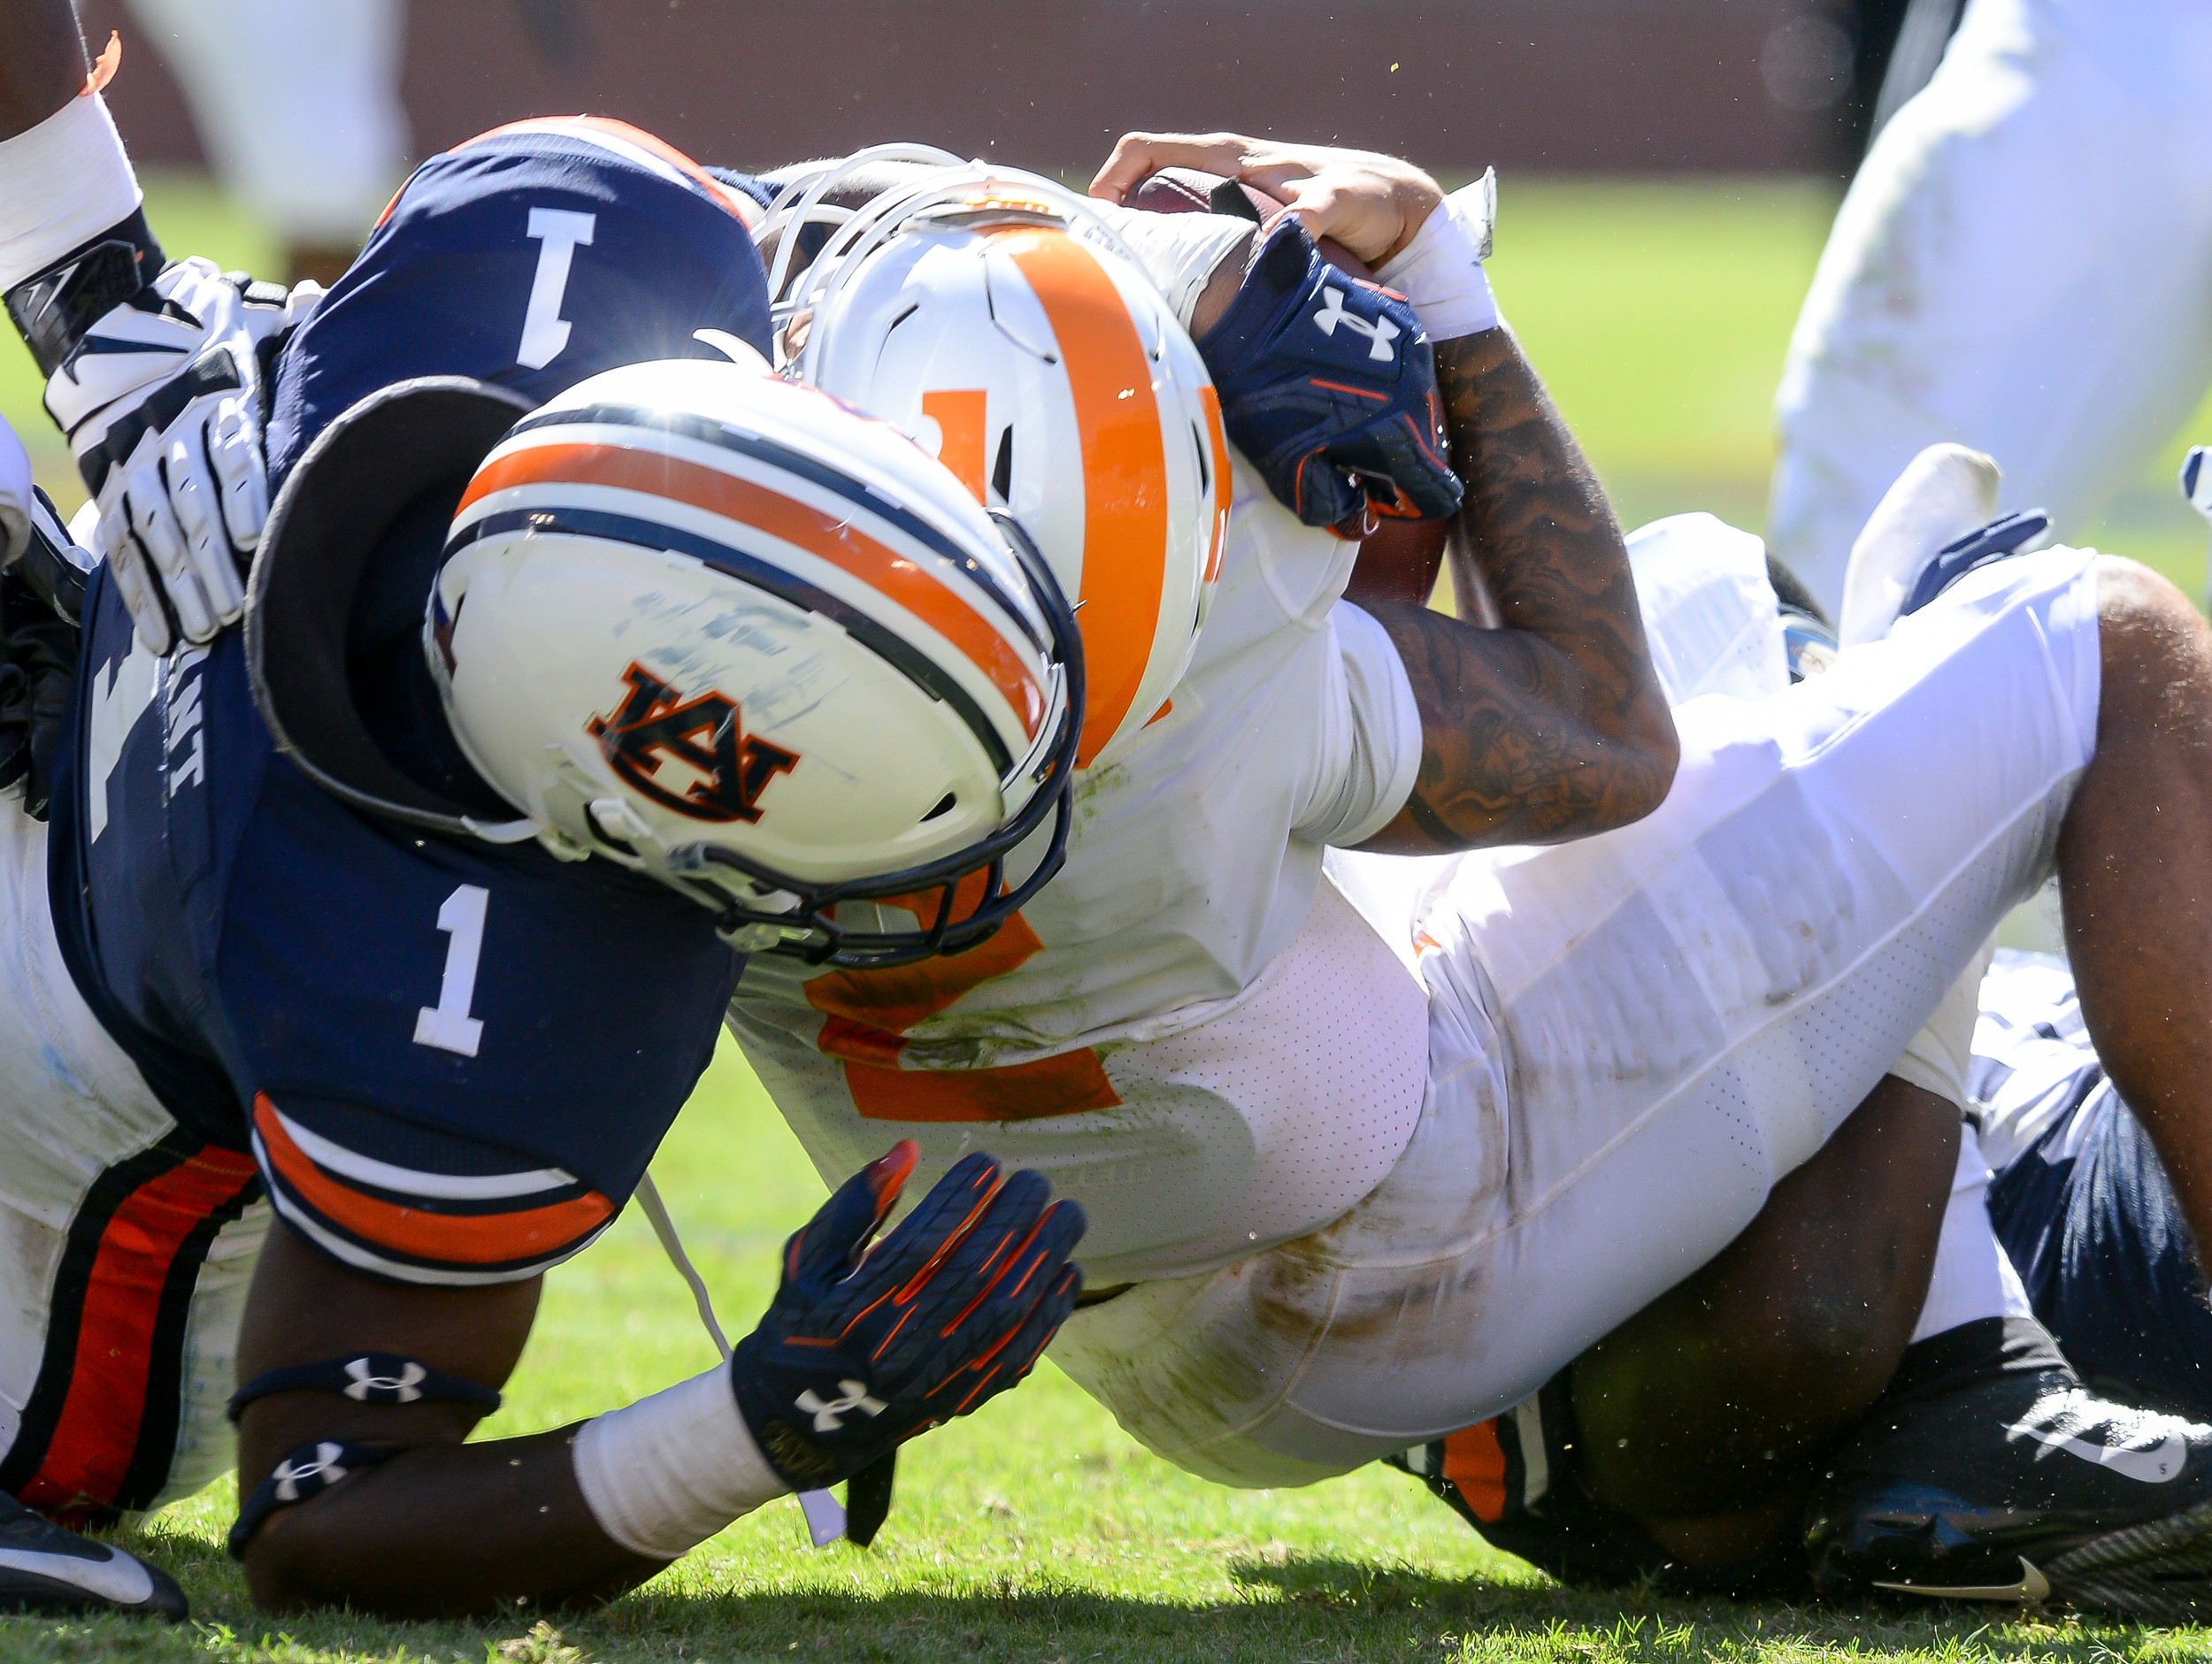 Auburn Tigers linebacker Big Kat Bryant (1) tackles Tennessee Volunteers quarterback Jarrett Guarantano (2) during the second half of Saturday's game, at Jordan-Hare Stadium in Auburn, AL. Daily Mountain Eagle -  Jeff Johnsey